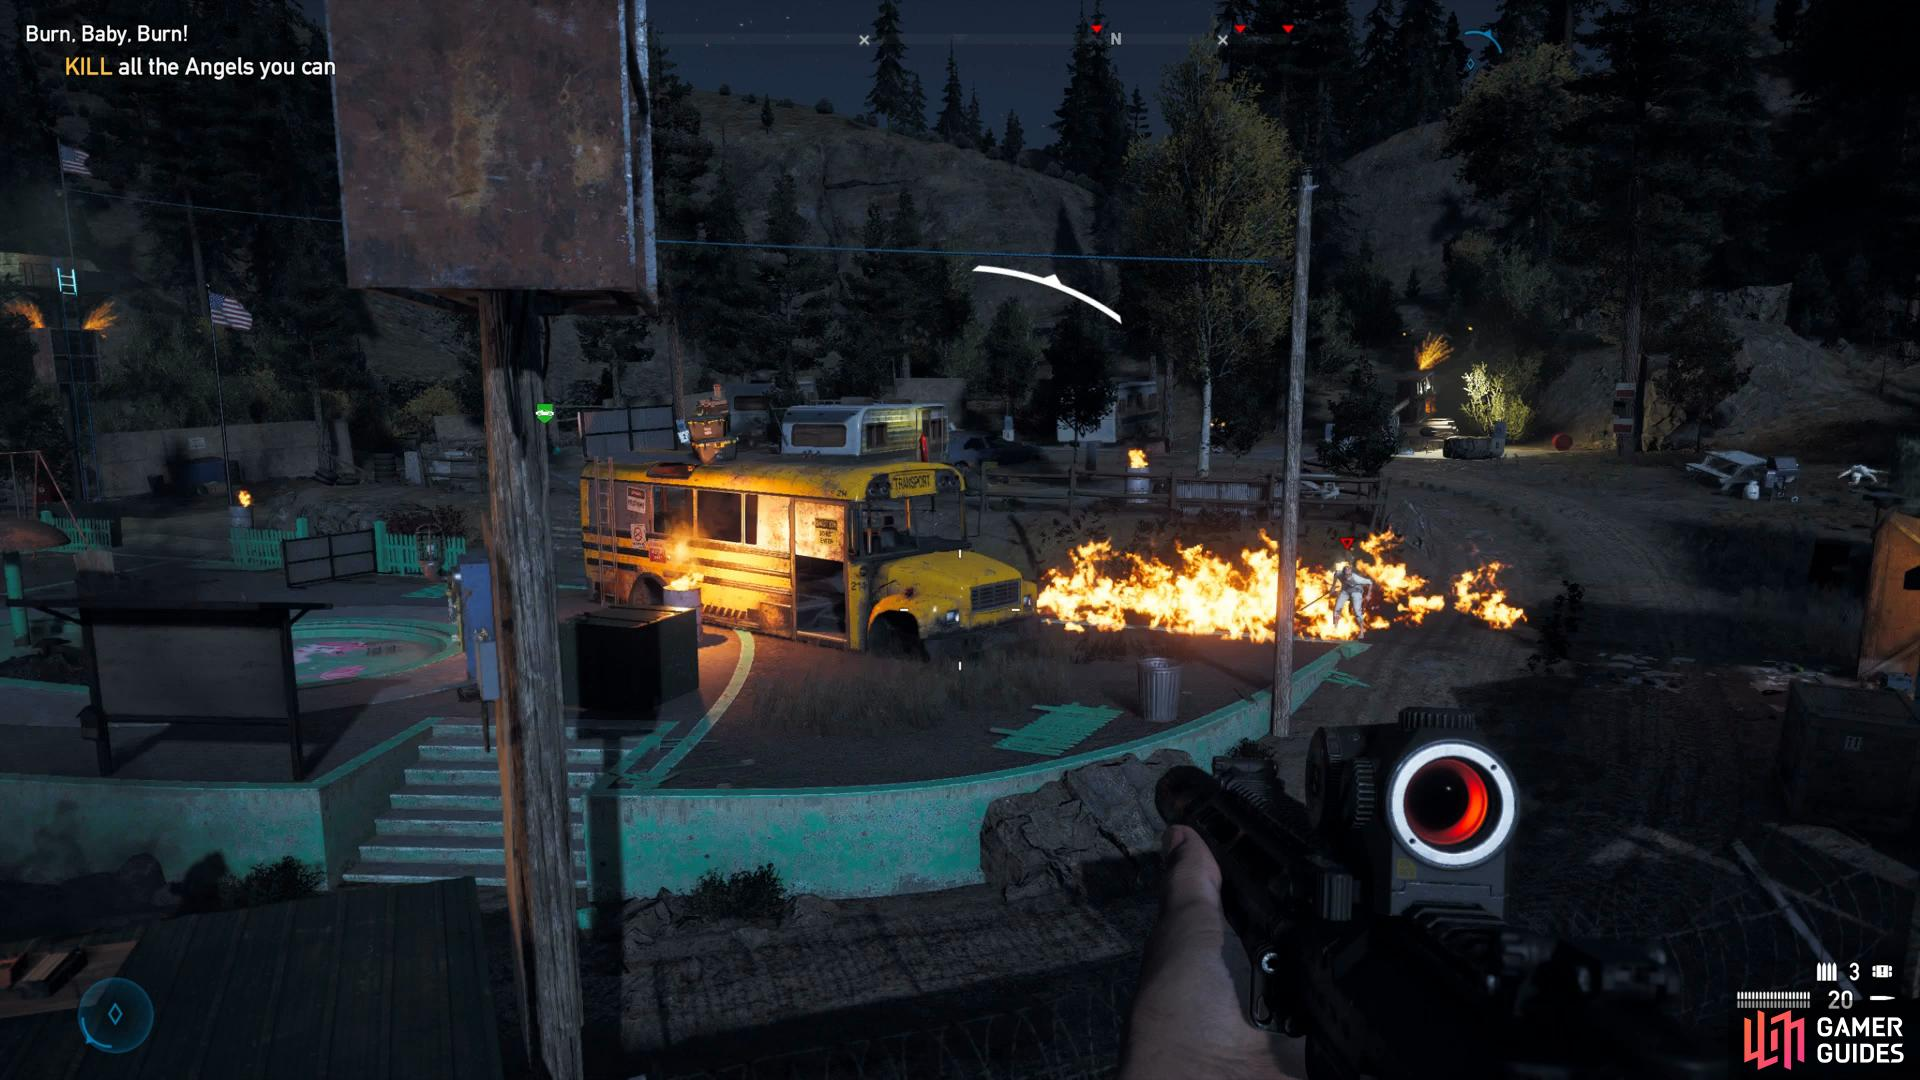 Using a Molotov can cause damage over a large area